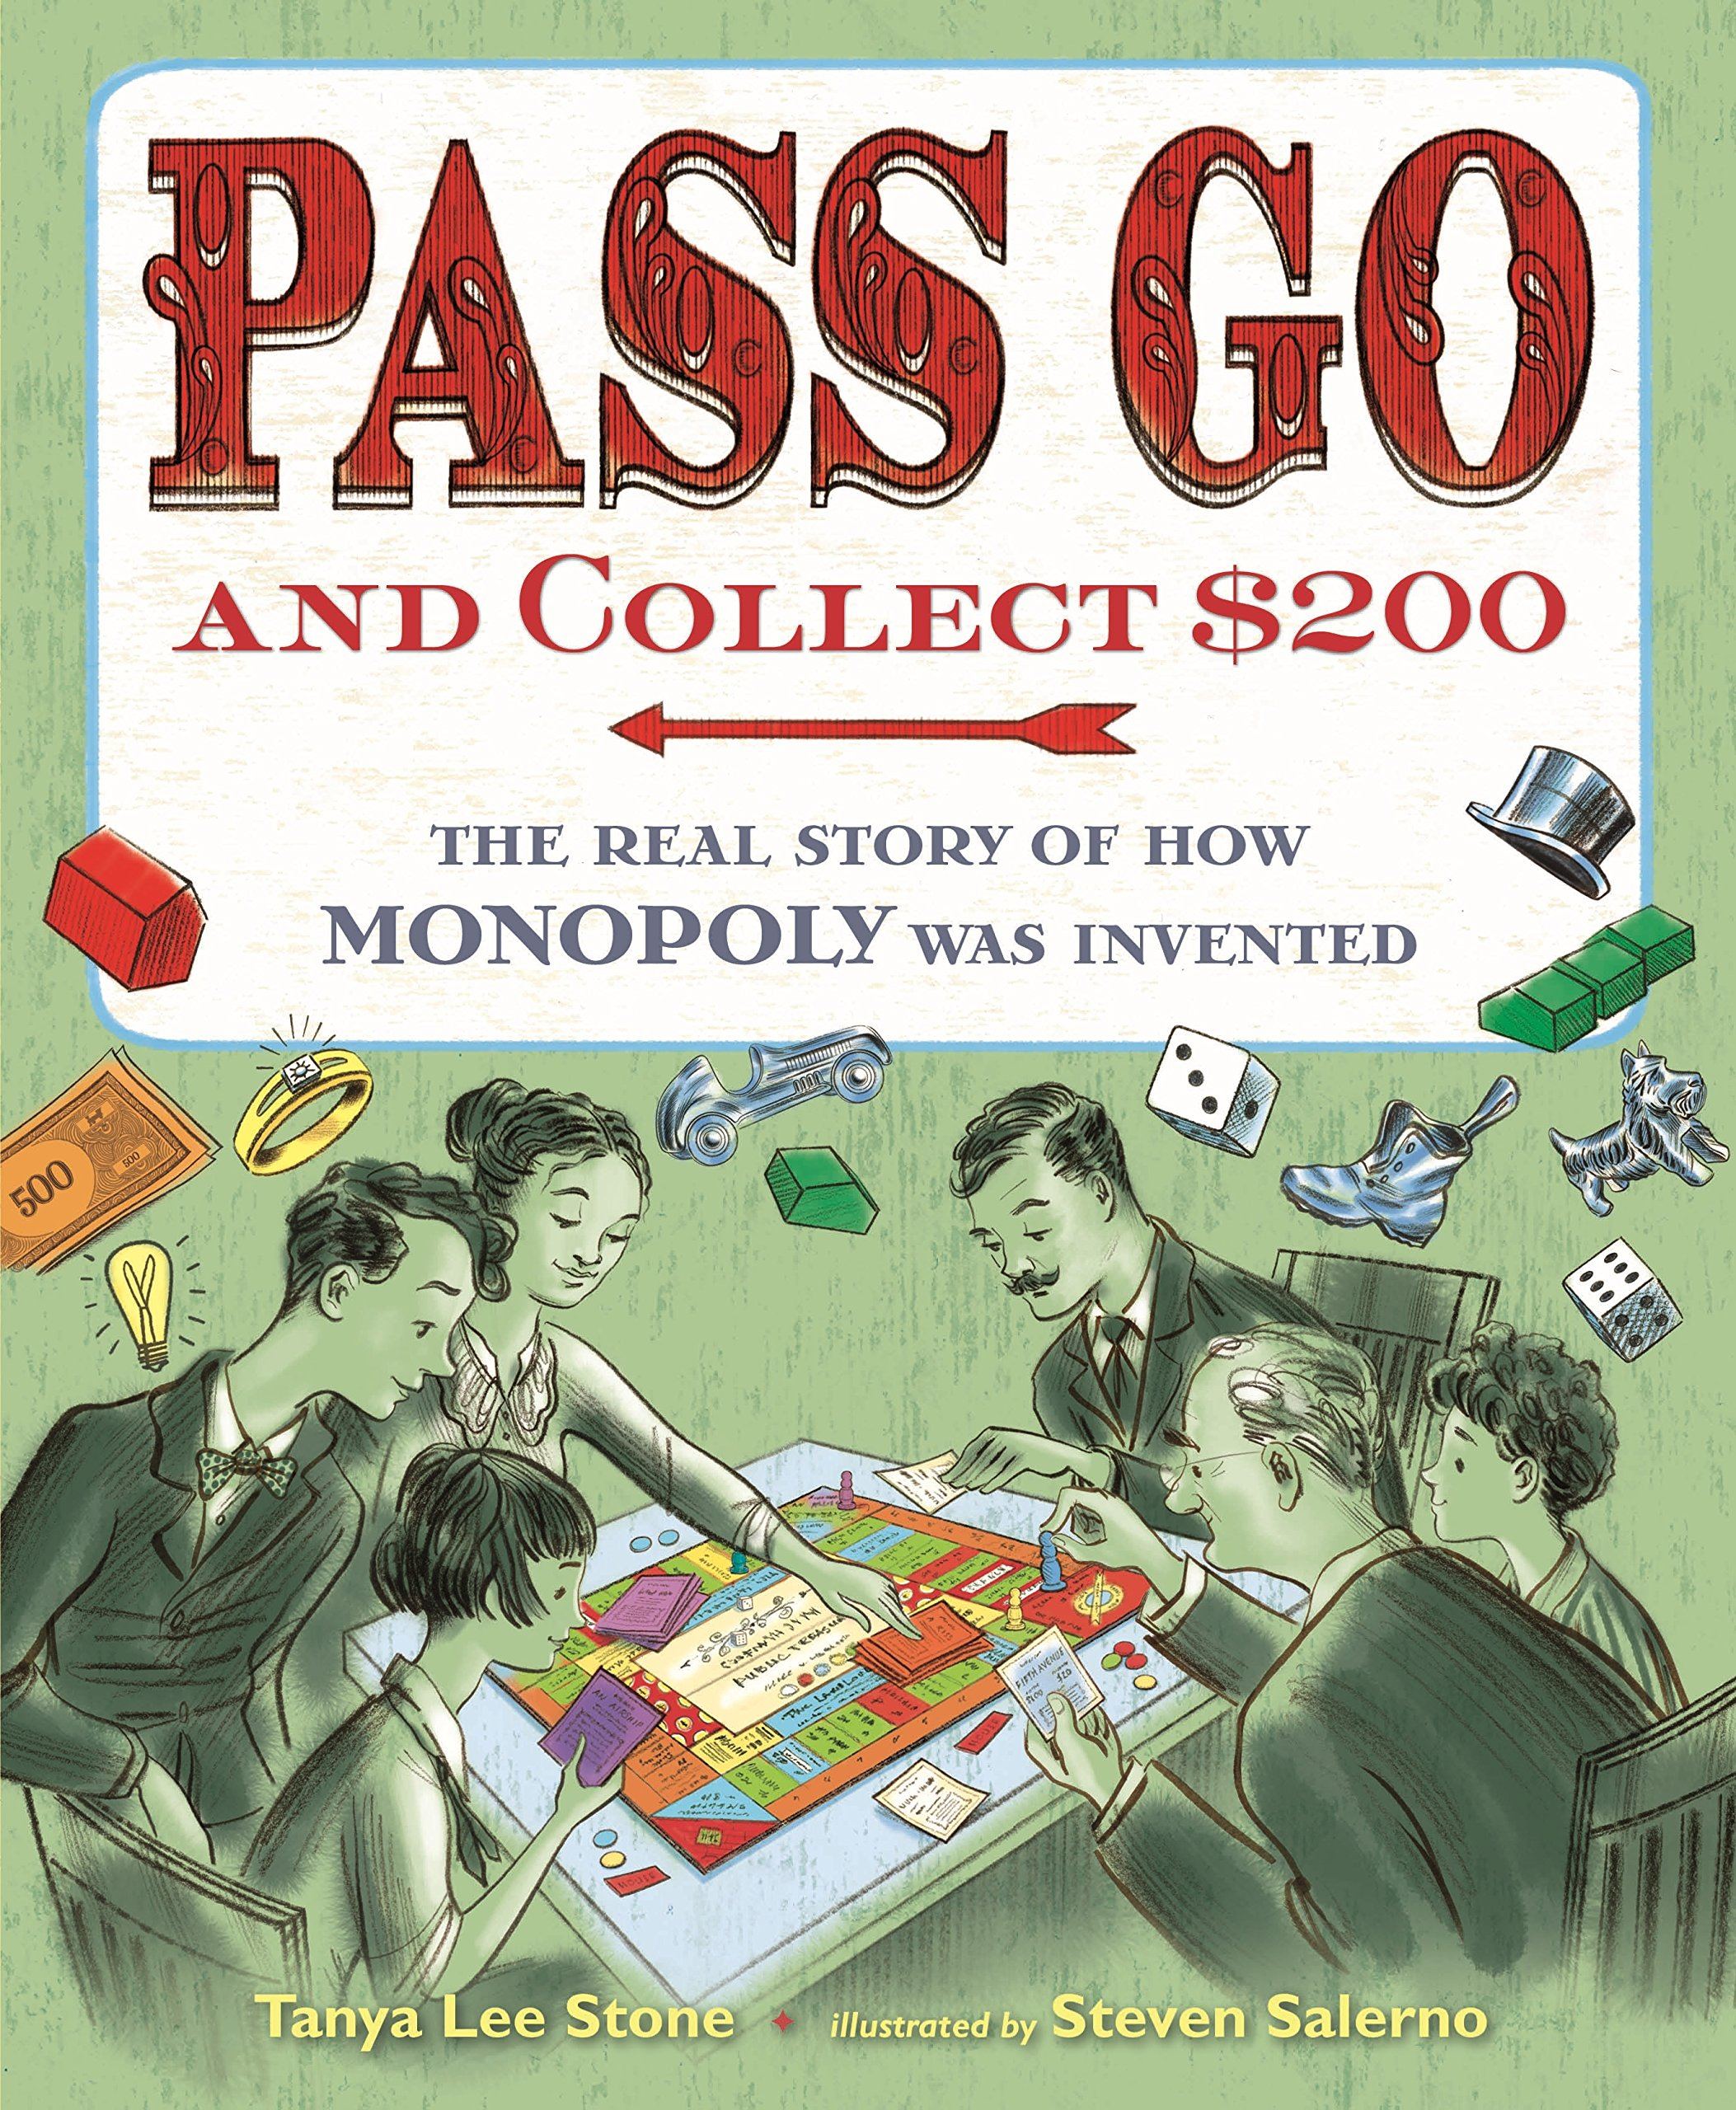 Pass Go and Collect $200 by Tanya Lee Stone | SLJ Review